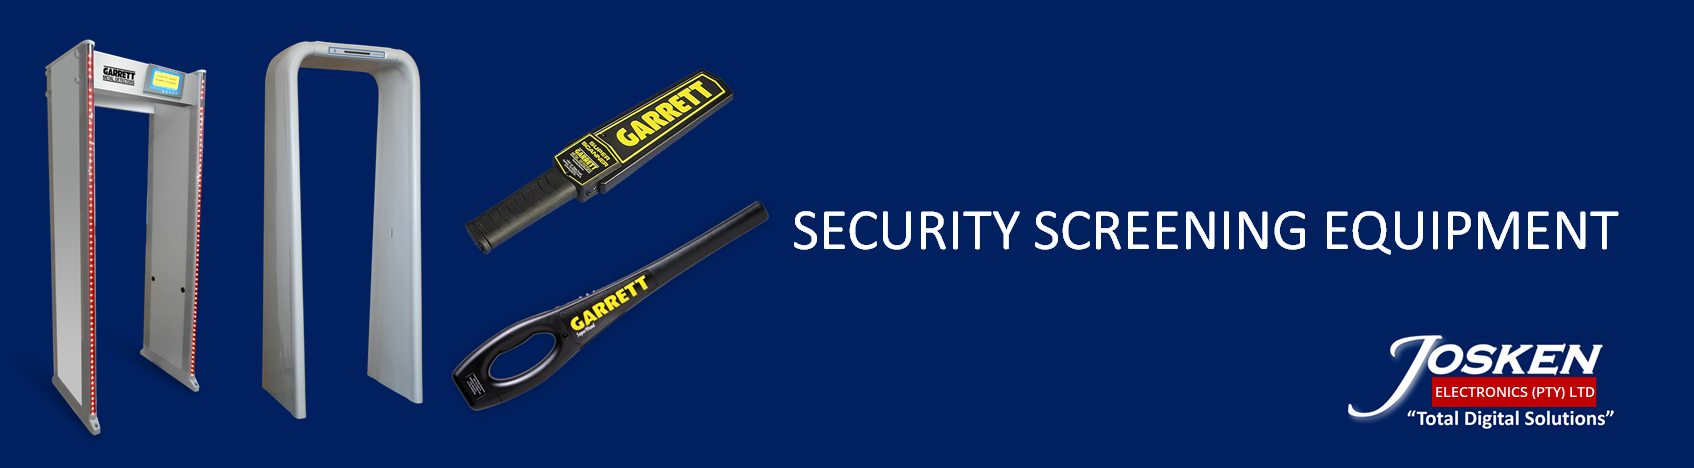 SECURITY-SCREENING-EQUIPMENT-BANNER